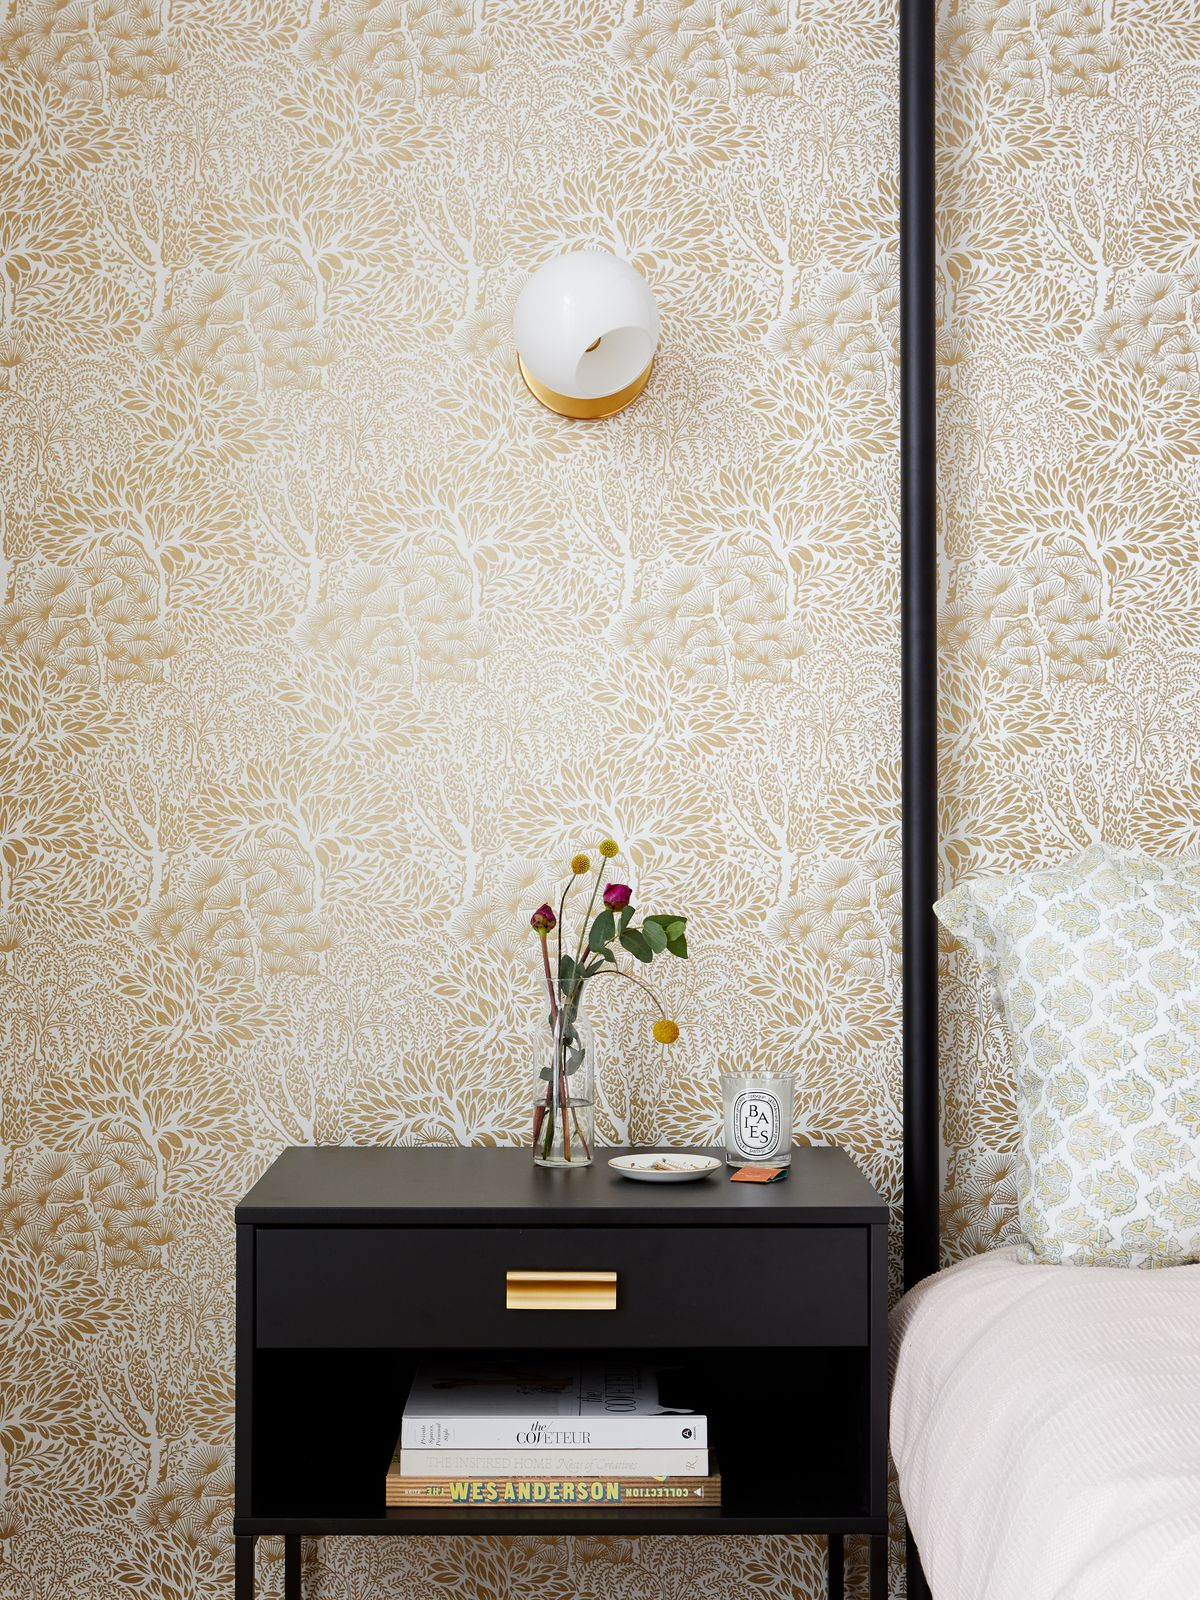 A closely cropped photo of small-scale gold and white wallpaper. In front of the wall sits an elegant black night stand and a portion of a black four-post bed.